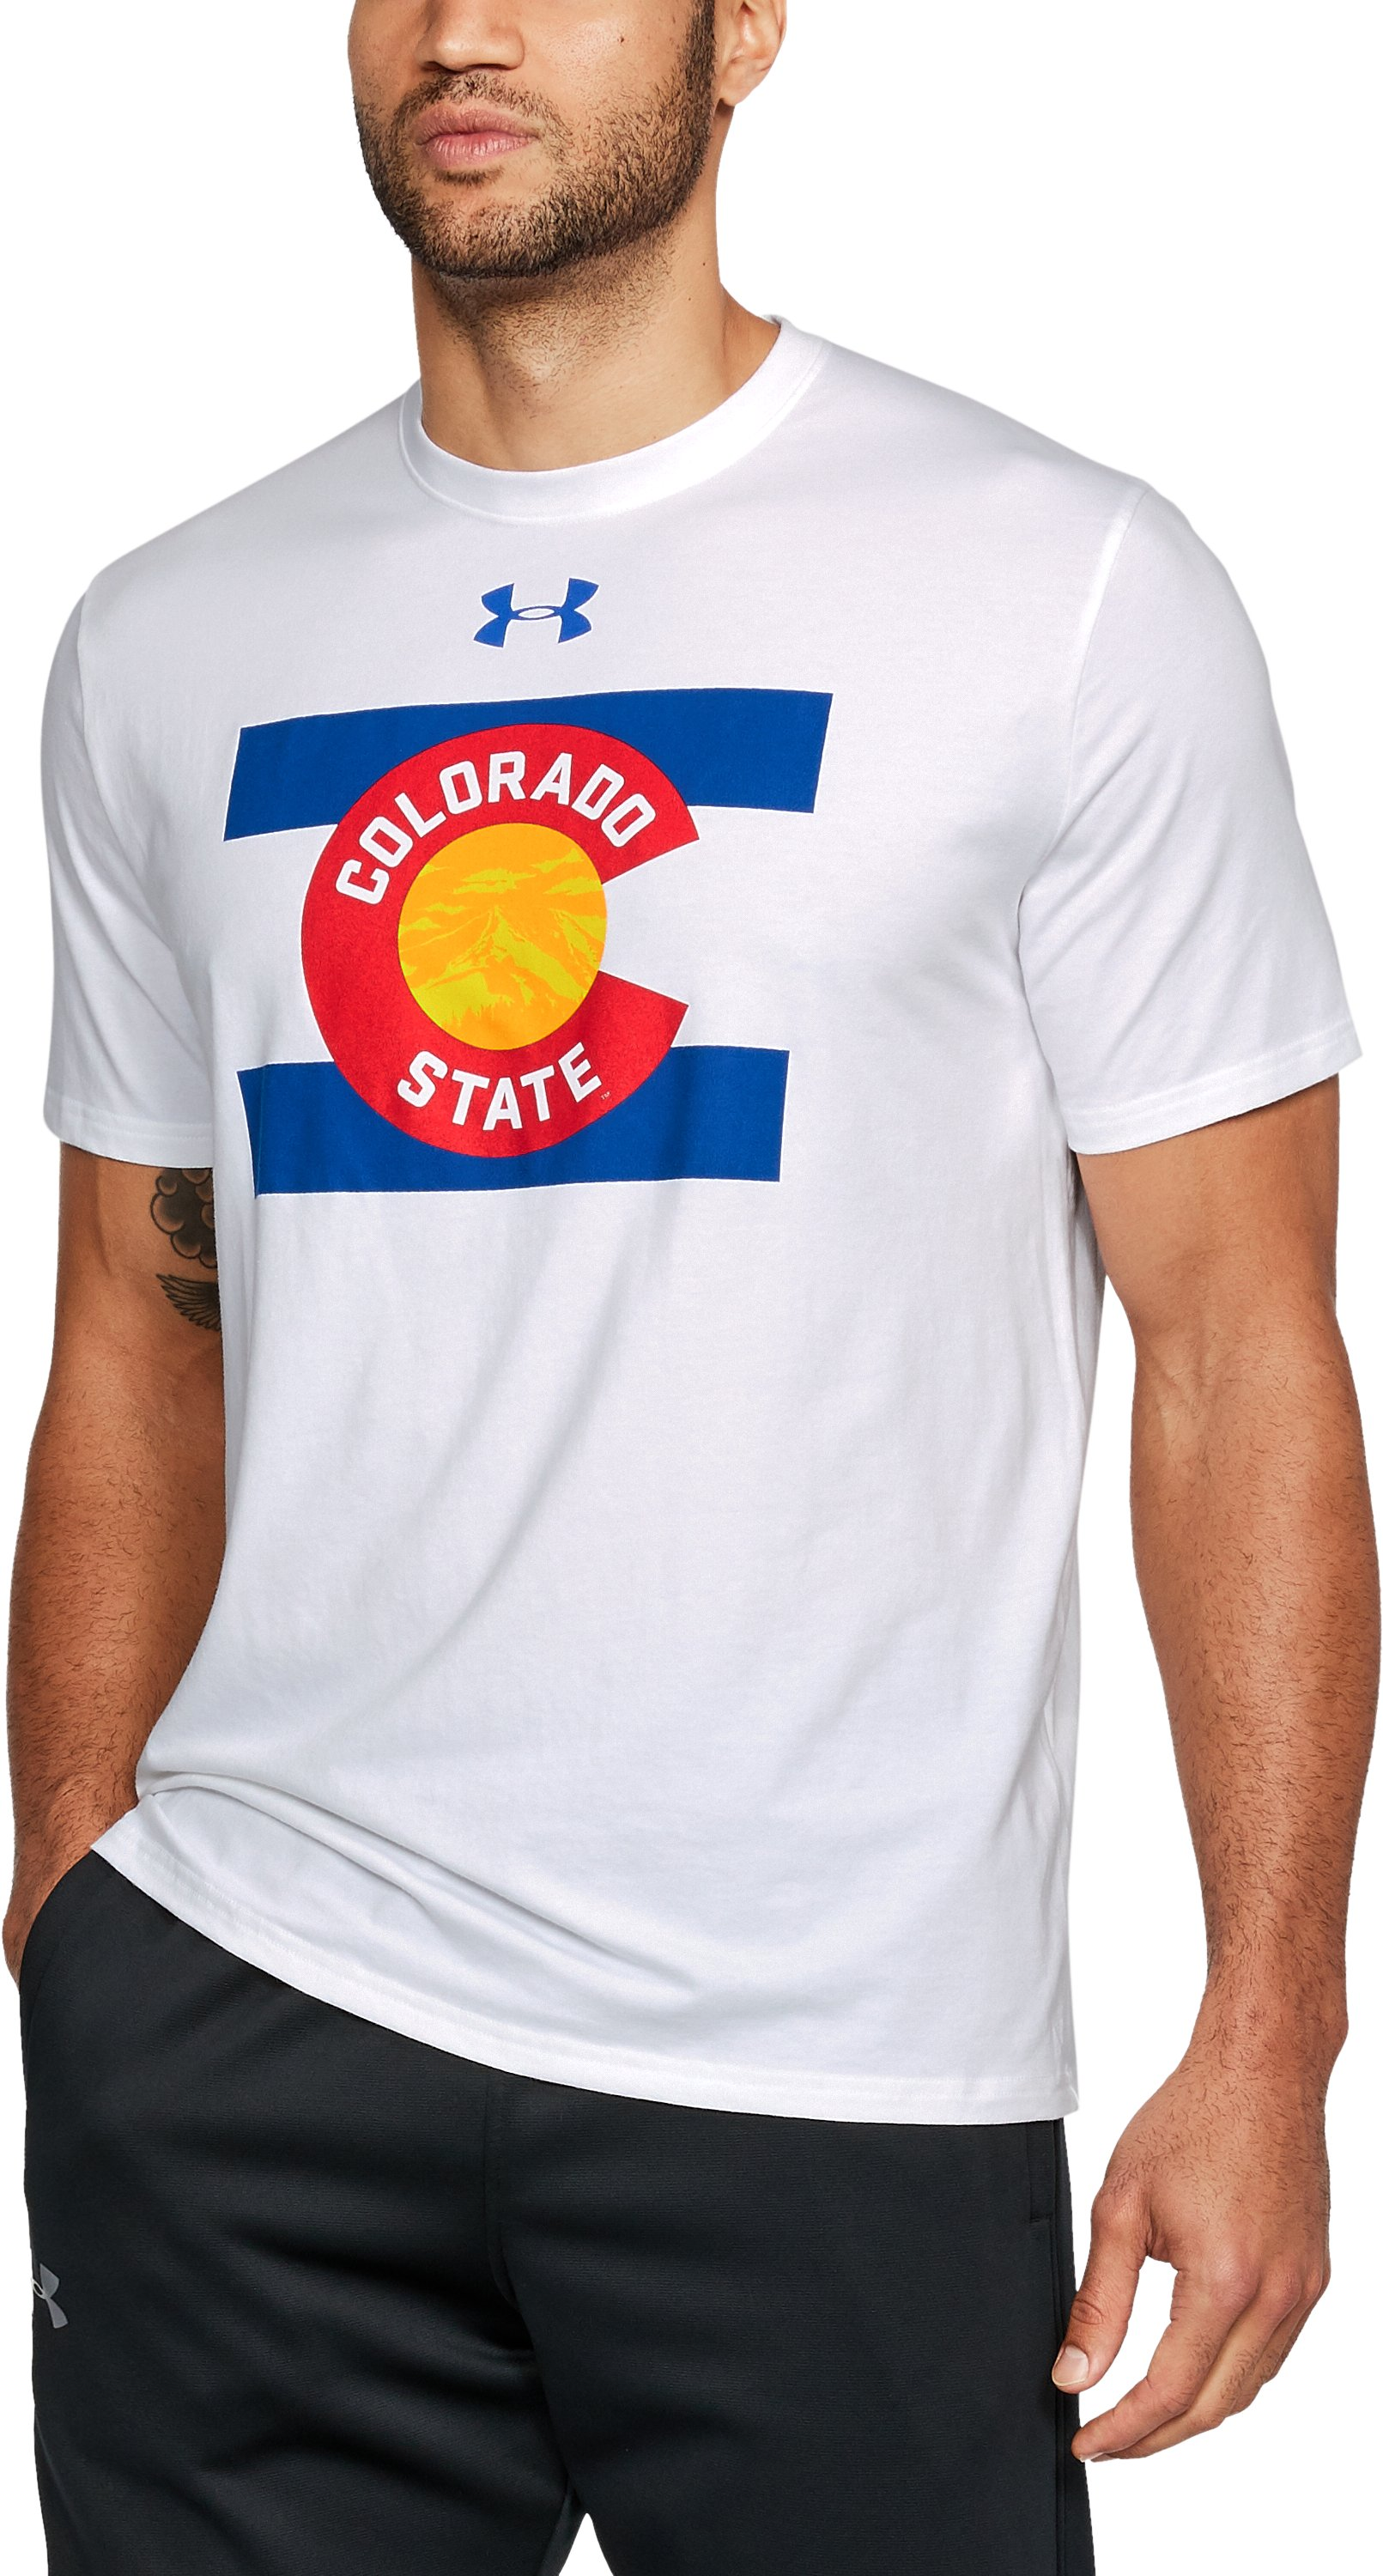 Men's Colorado State UA Flag T-Shirt, White